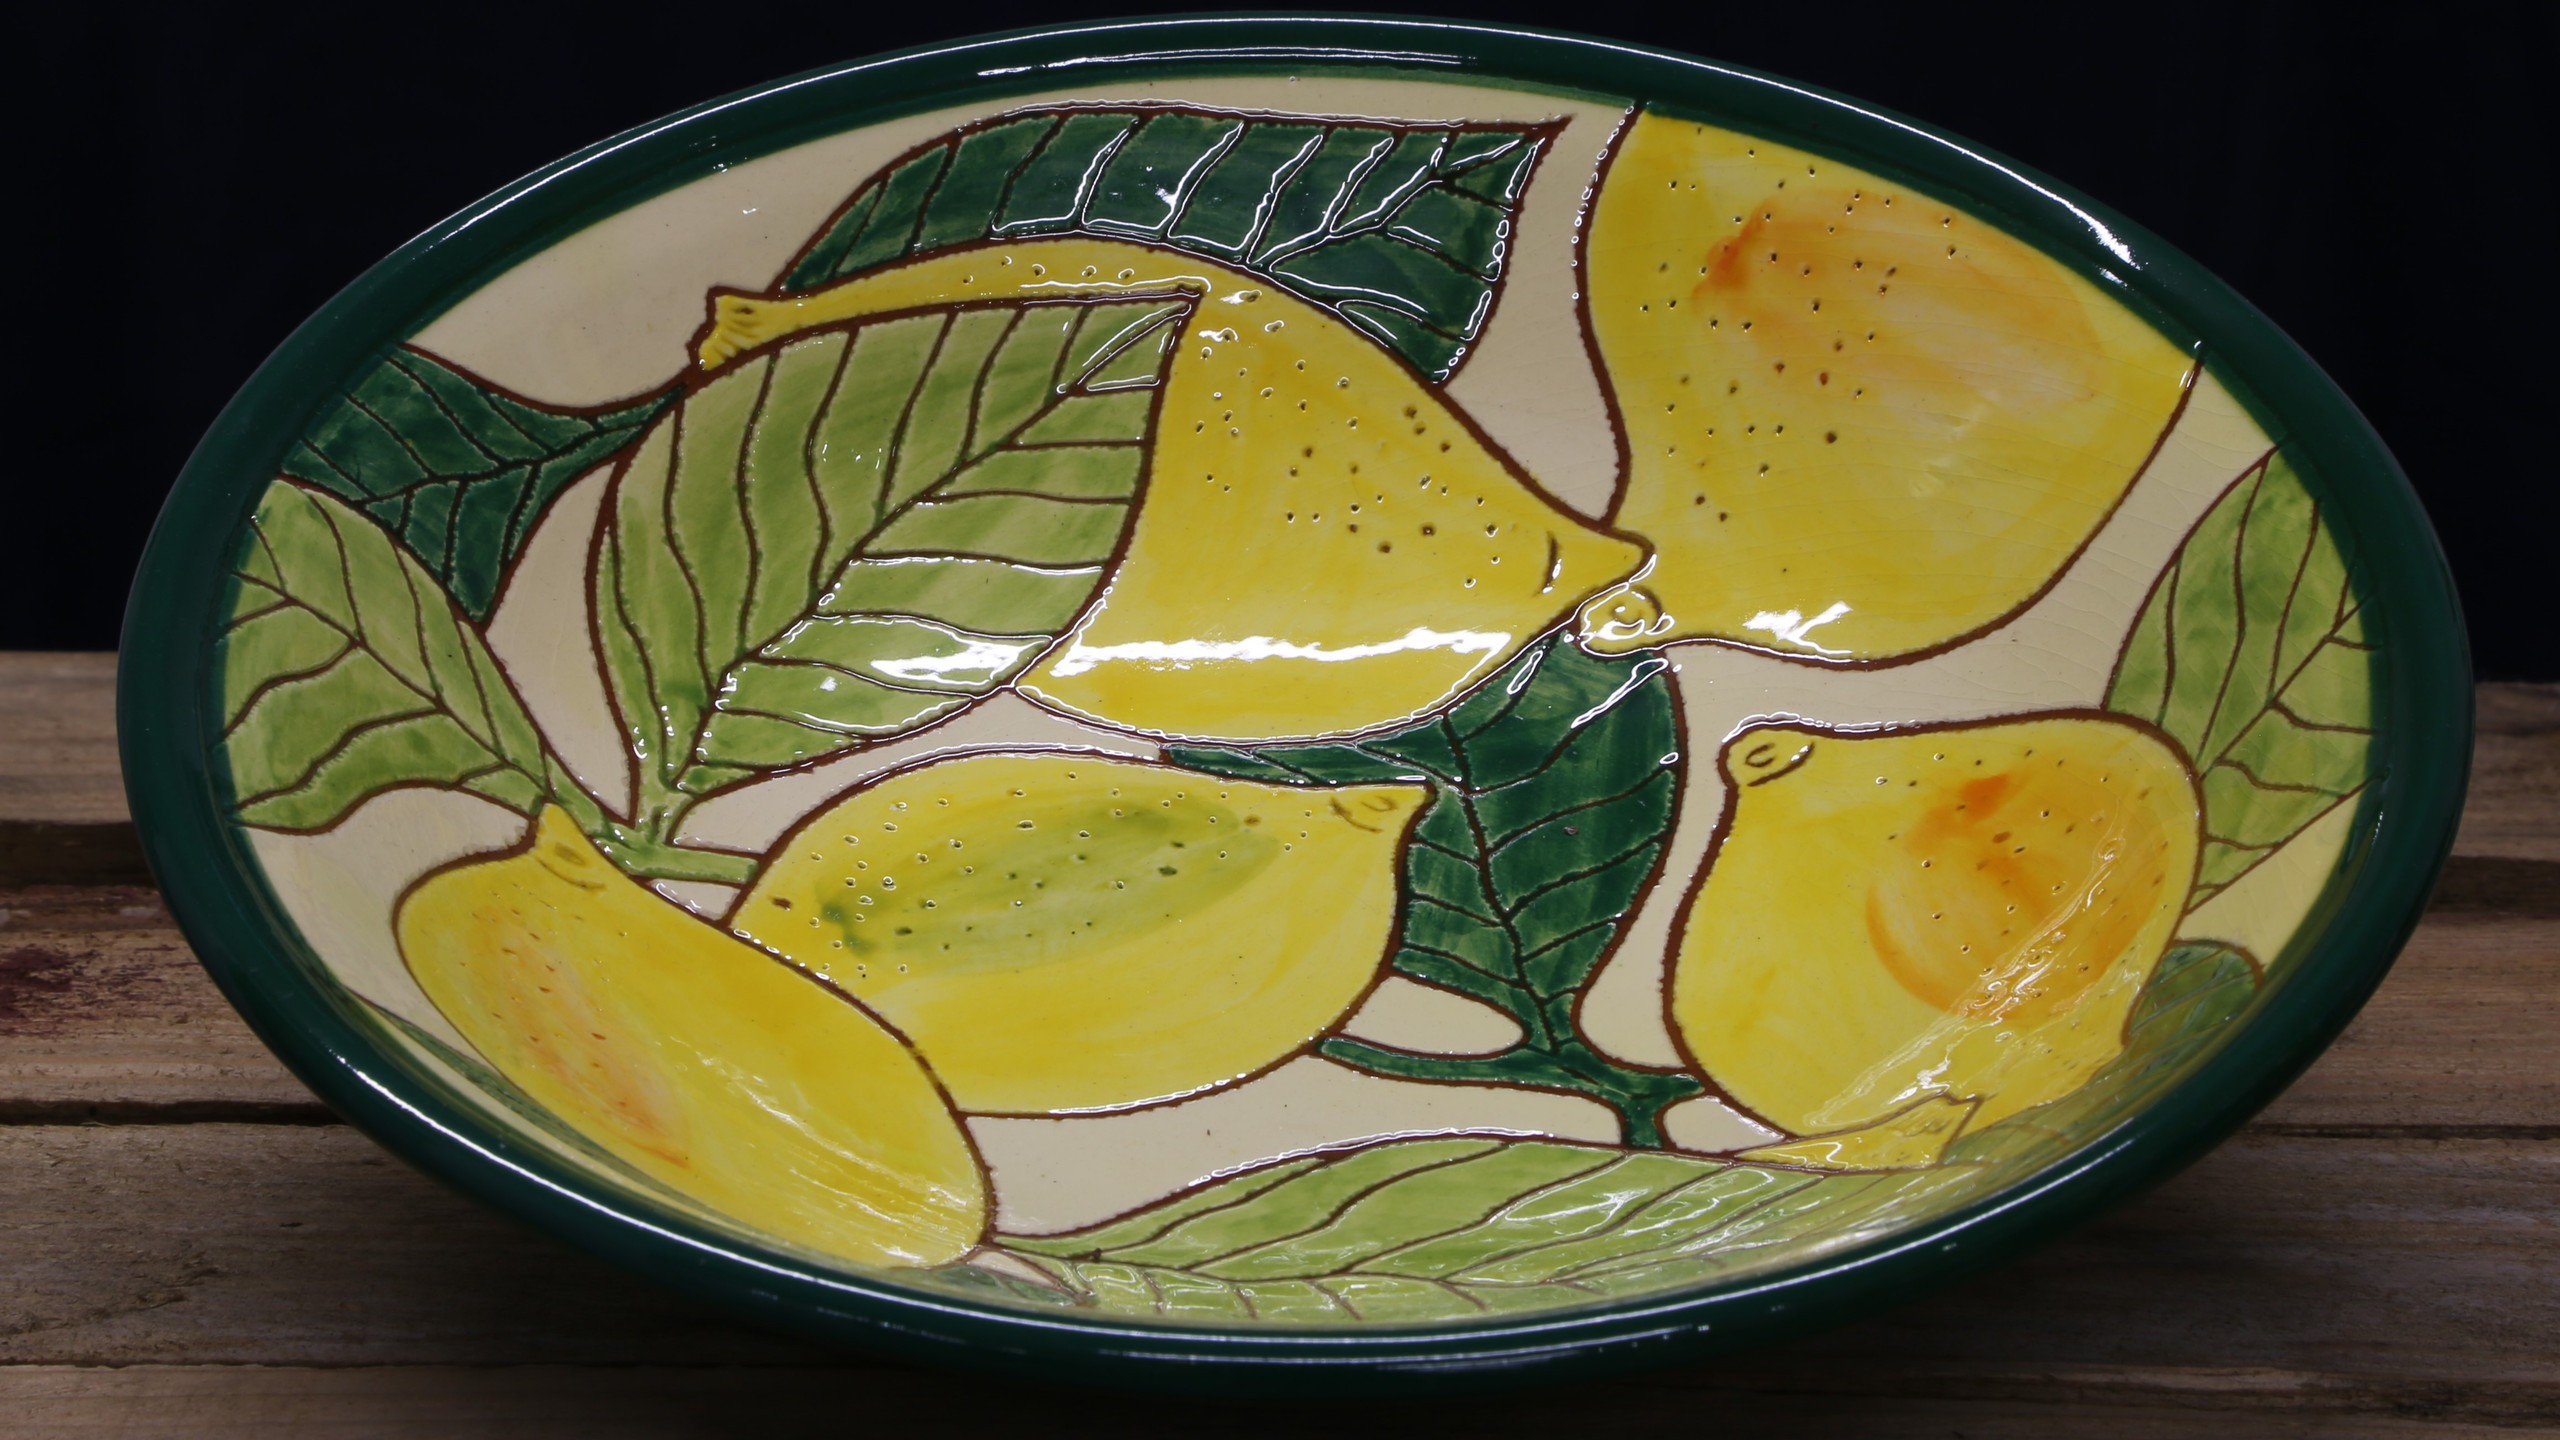 Plate with citrus